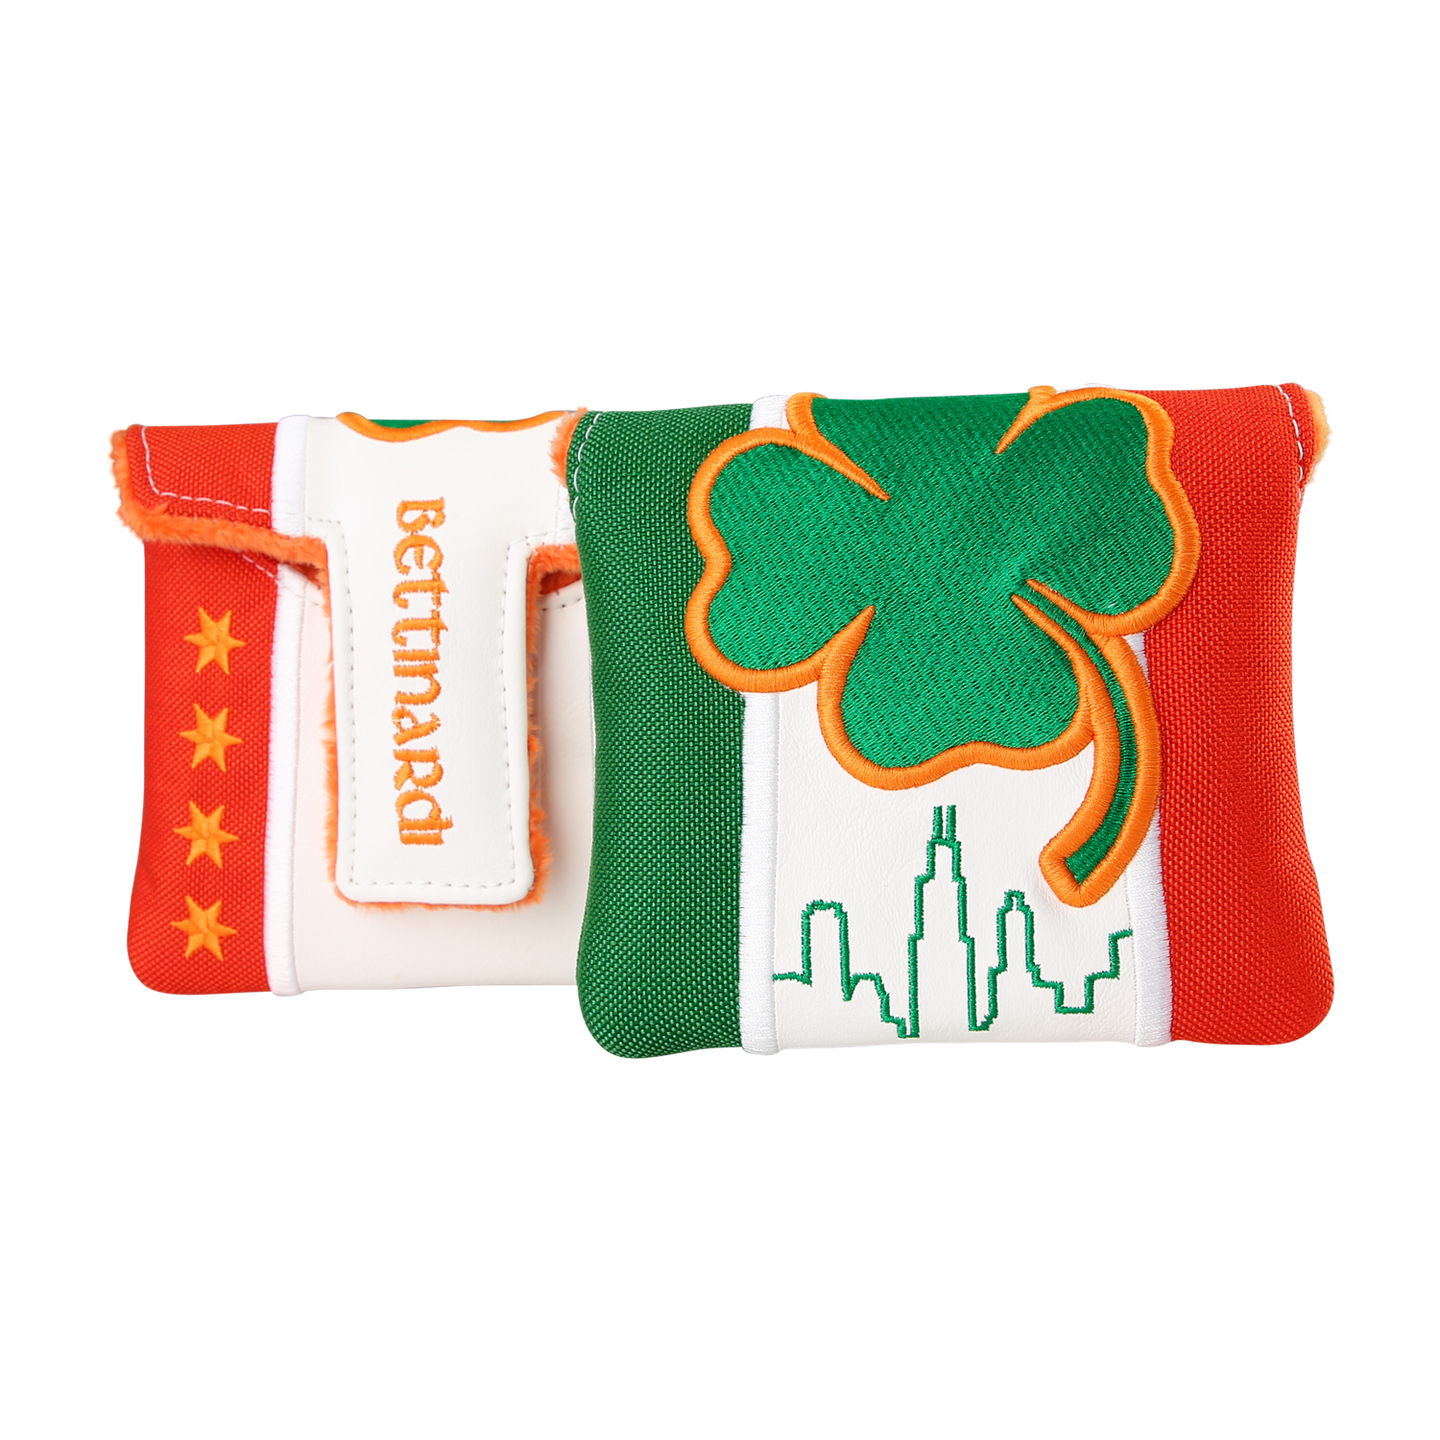 CHI-RISH Mallet Headcover